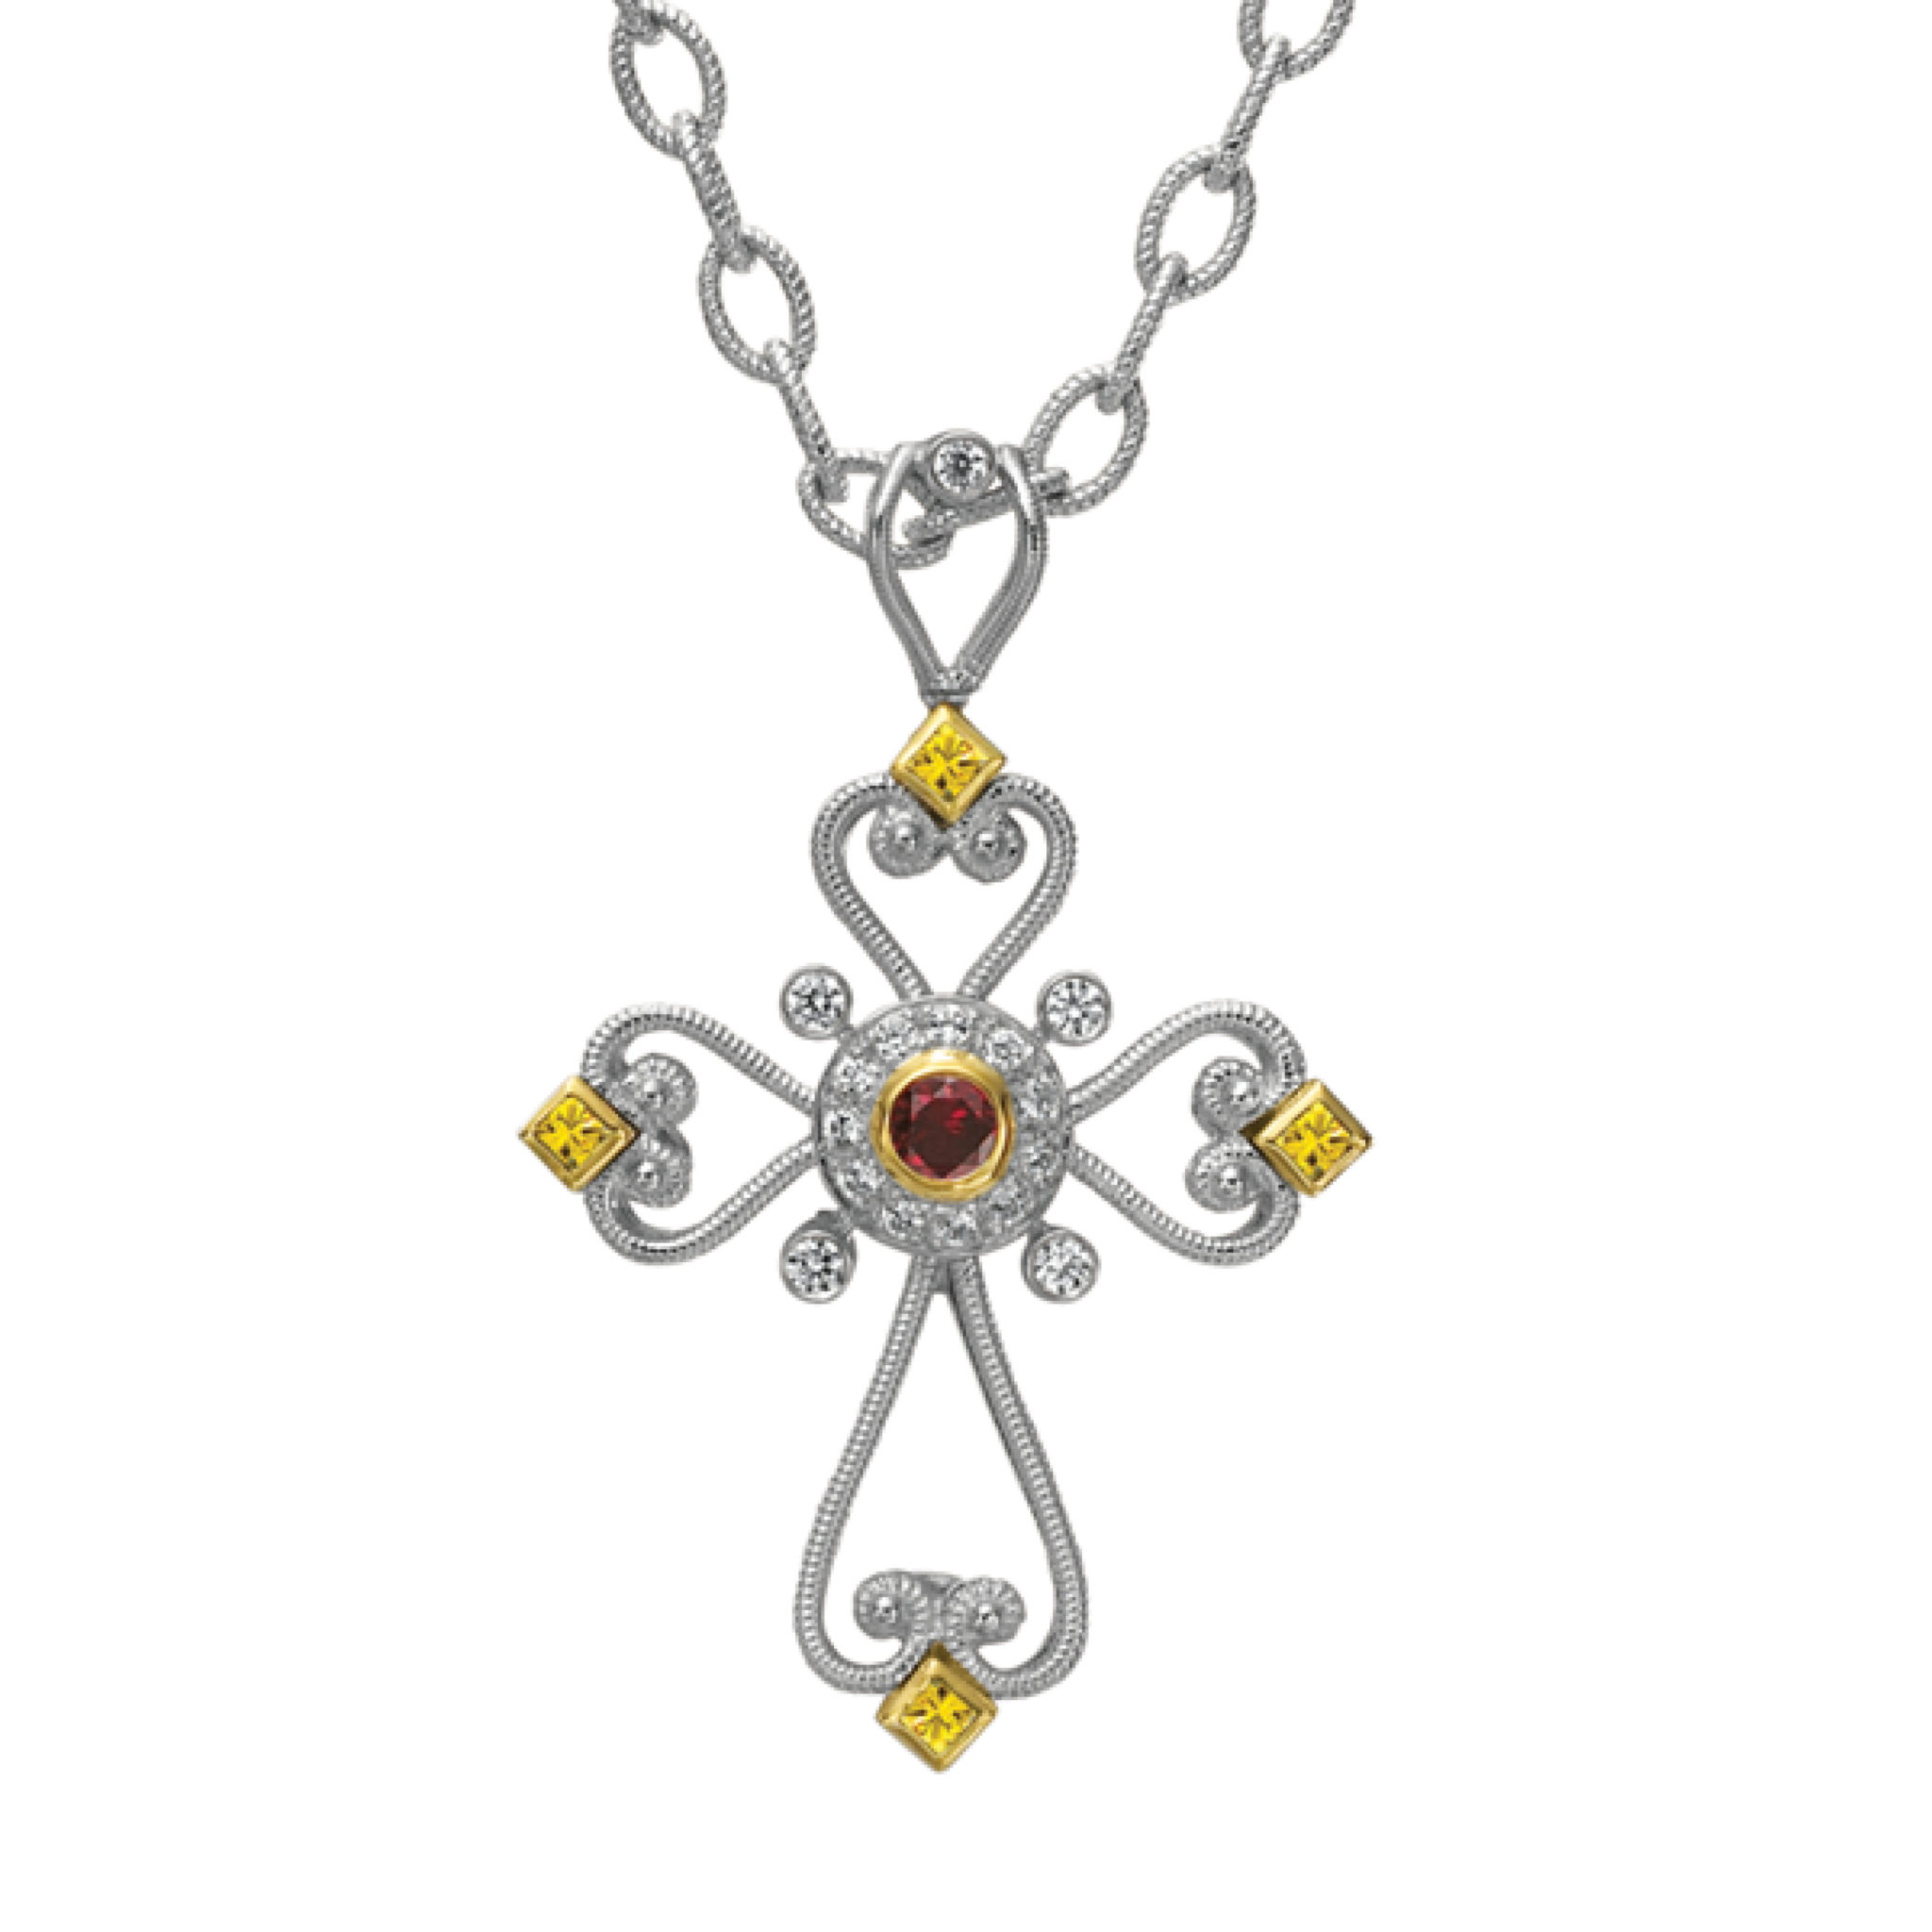 Designer Jewelry DePriest Robbins Eli Jewels Huntsville Alabama Crimson Cross